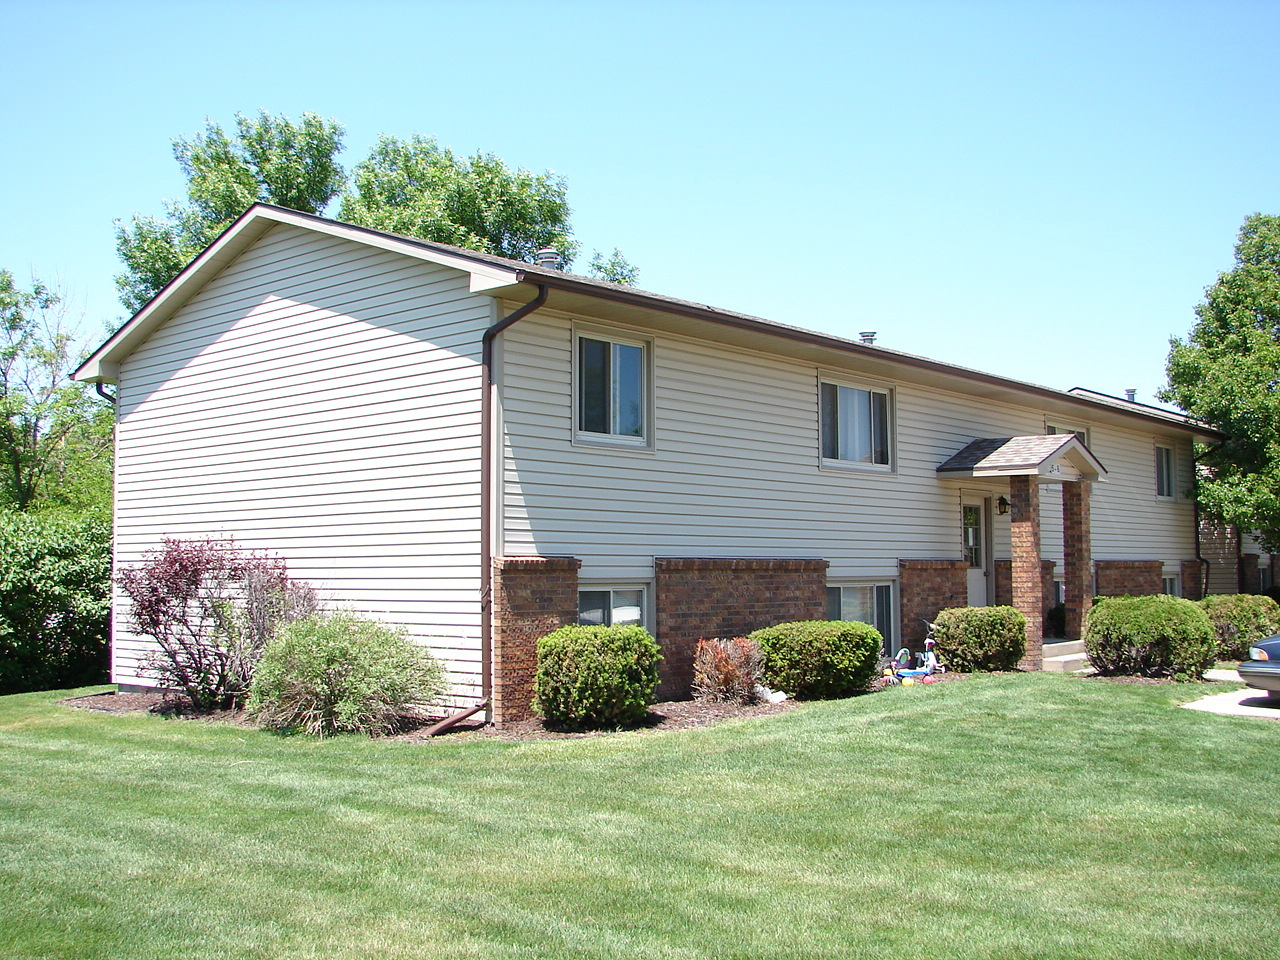 Apartment Complexes For Sale In Omaha Ne